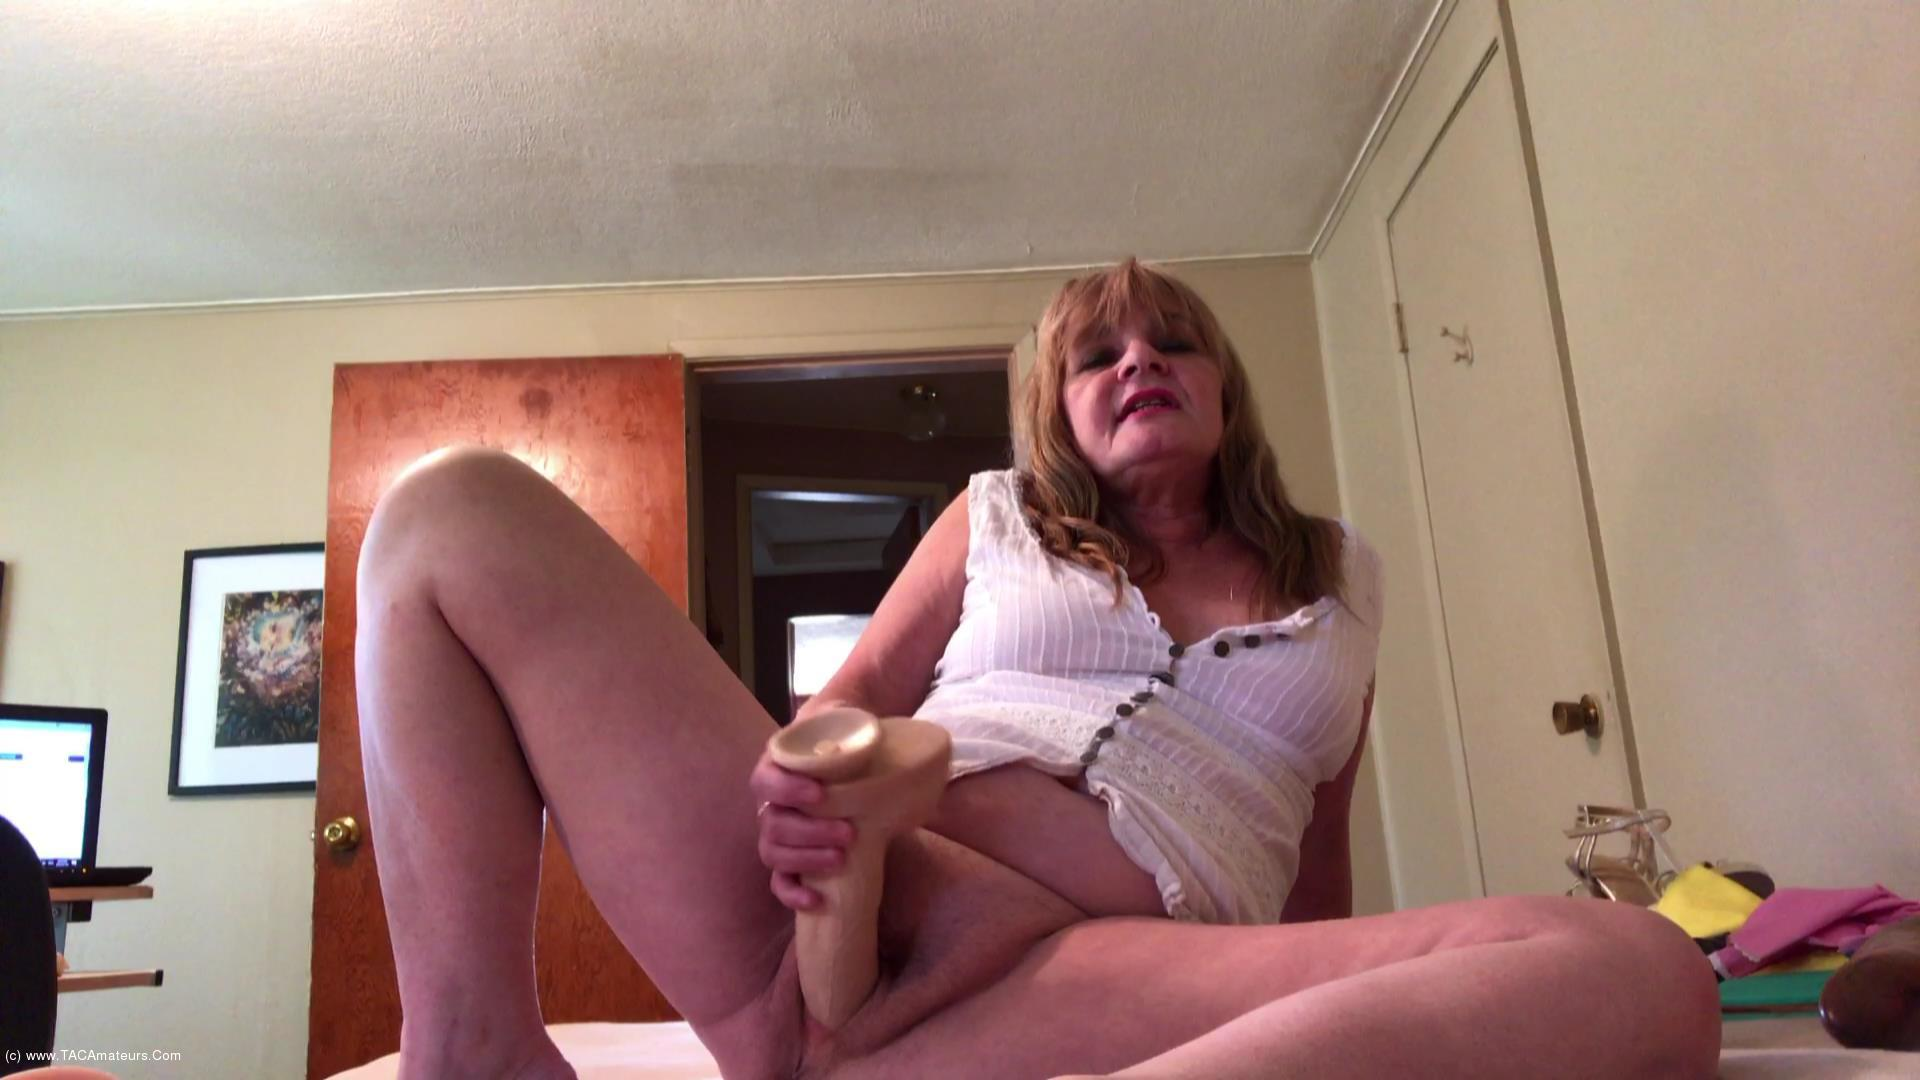 CougarBabeJolee - Filthy Milfy scene 0